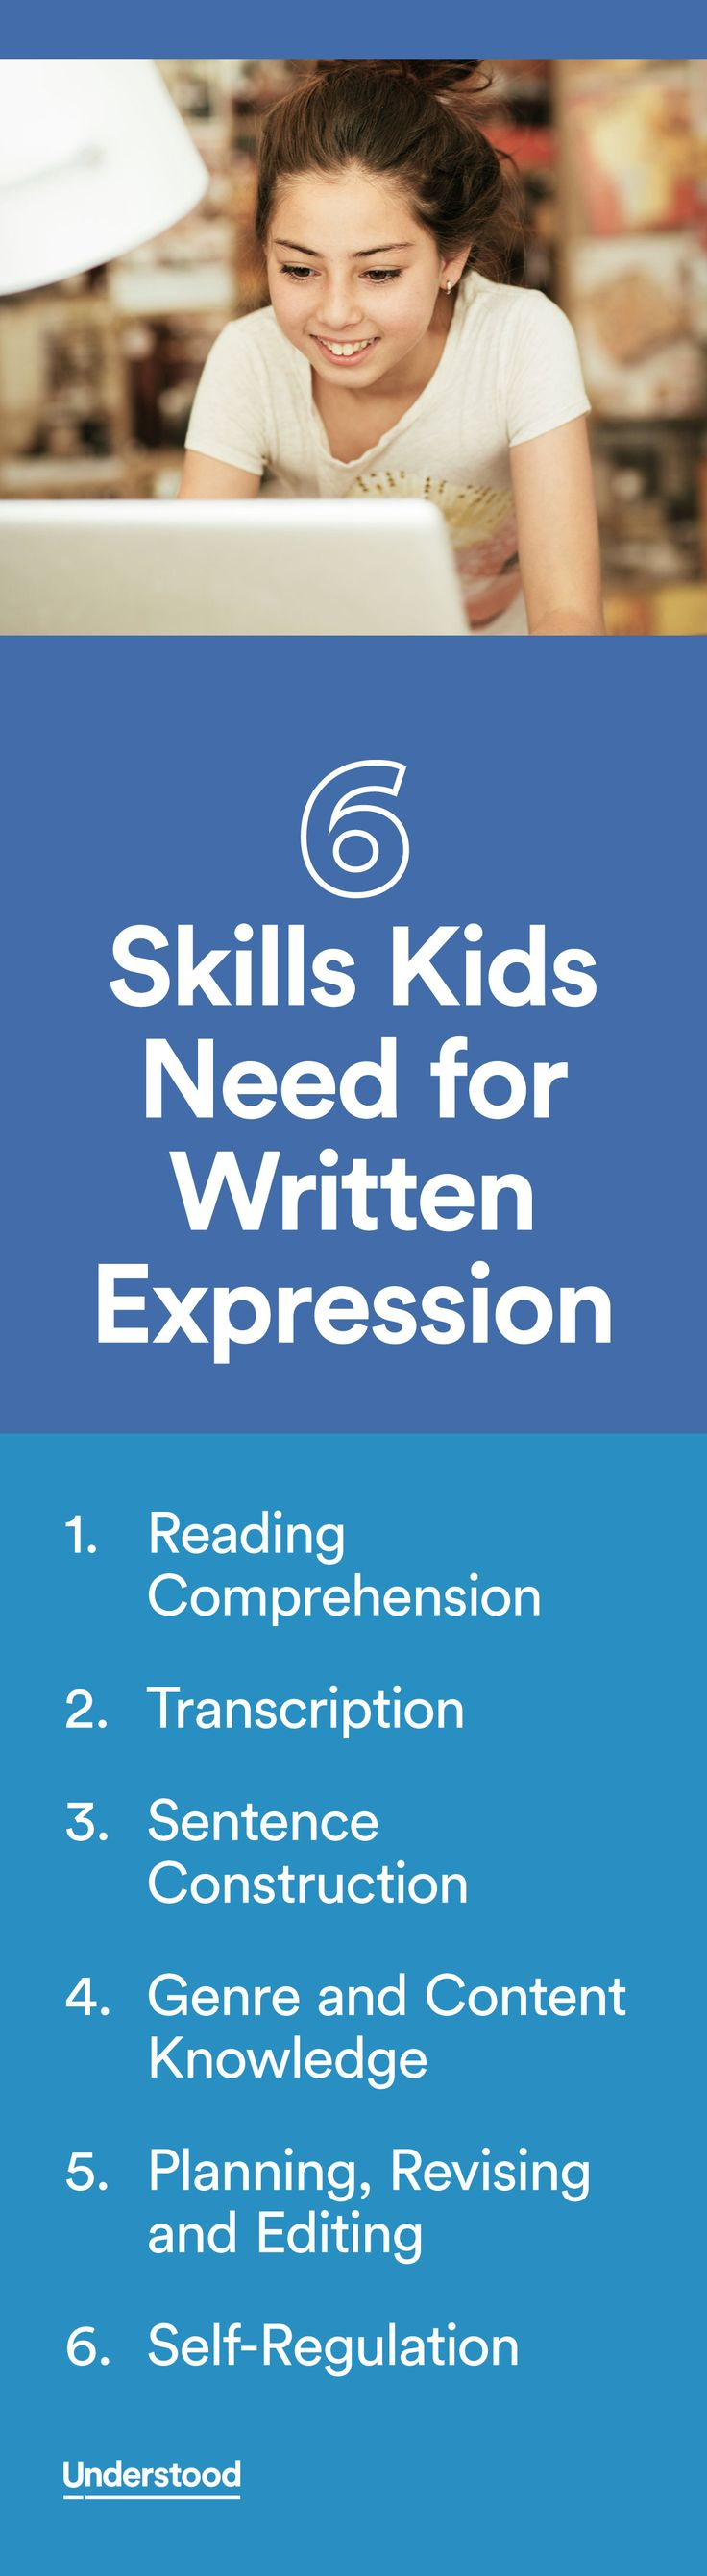 Writing skills operate at three levels: word, sentence and paragraph/whole text. By pinpointing trouble spots, you can get your child the right help to improve writing.